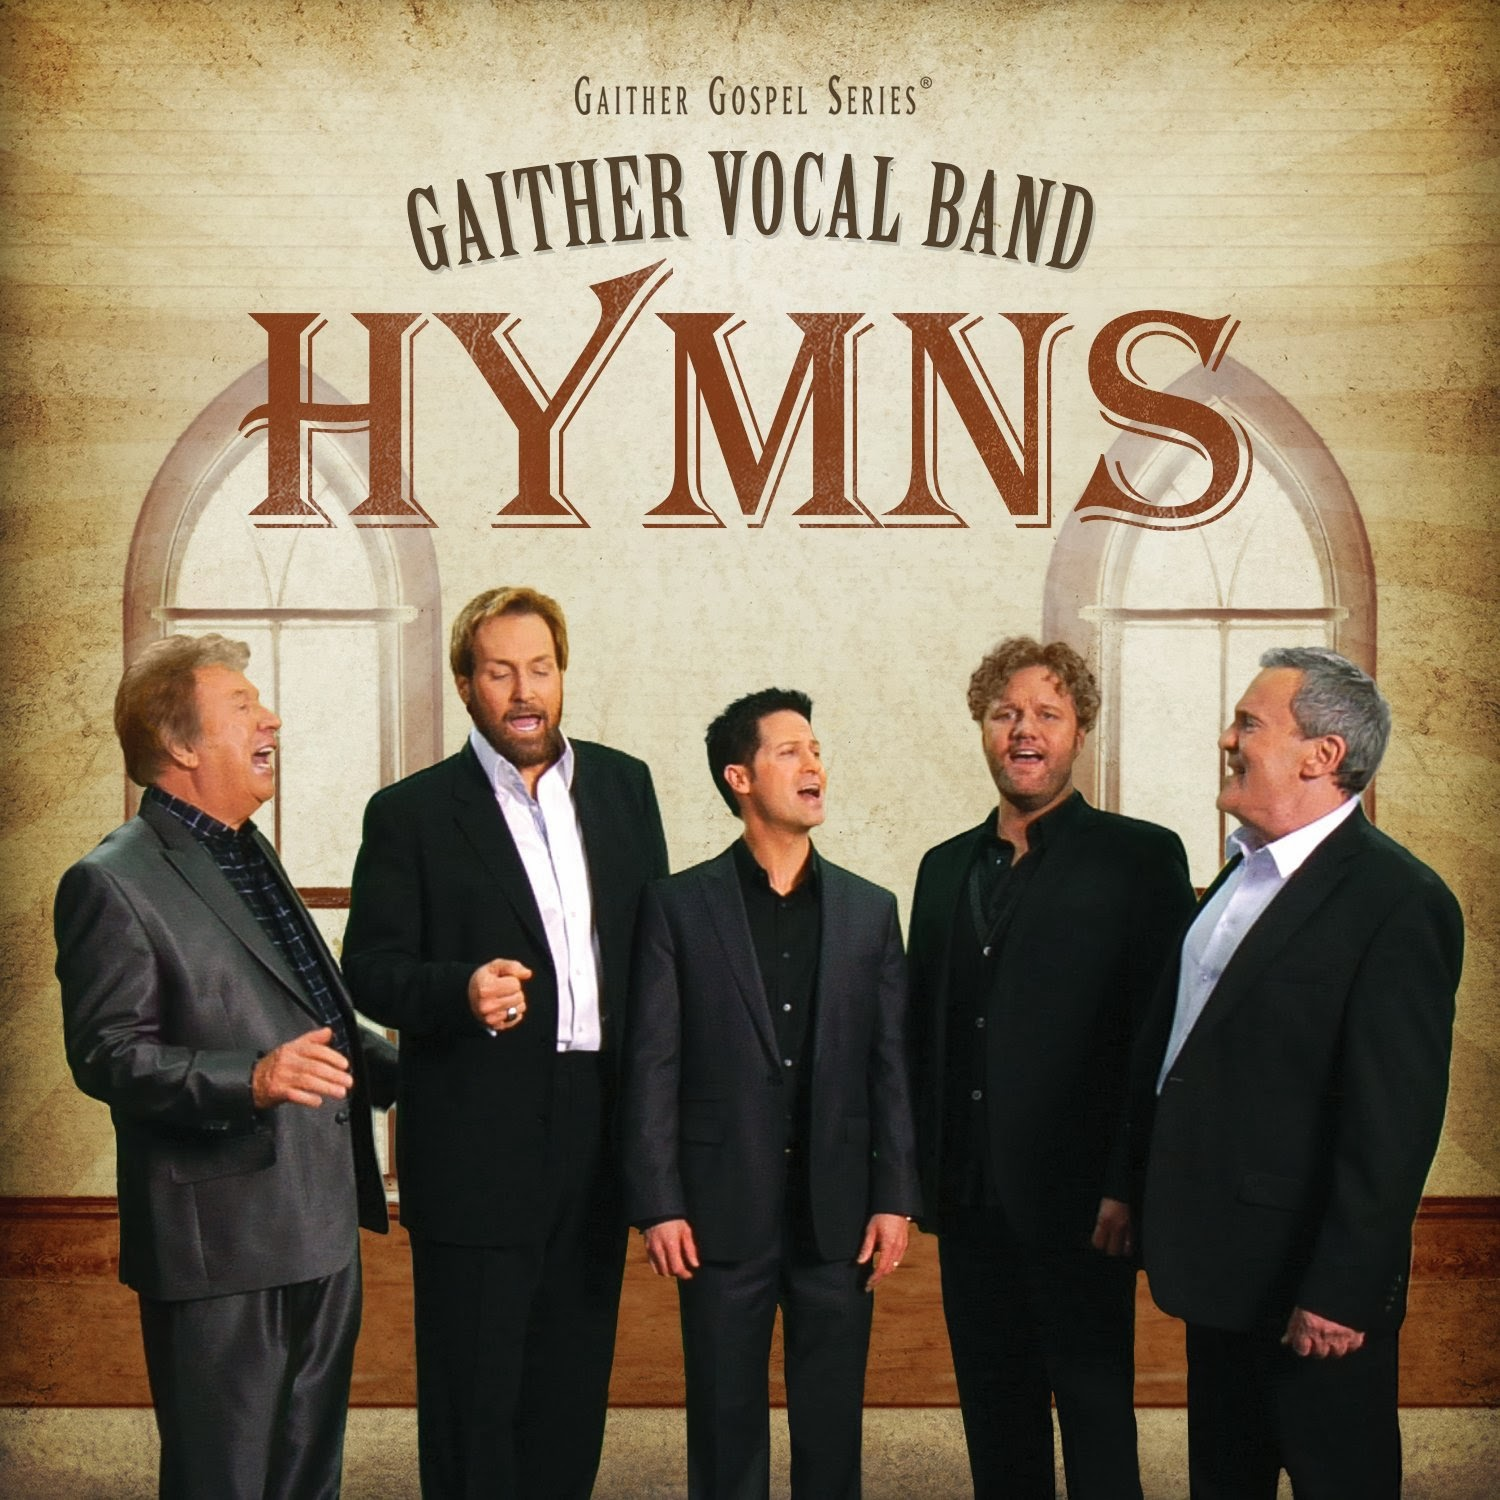 Gaither Vocal Band - Hymns (2014) English Christian Album Download